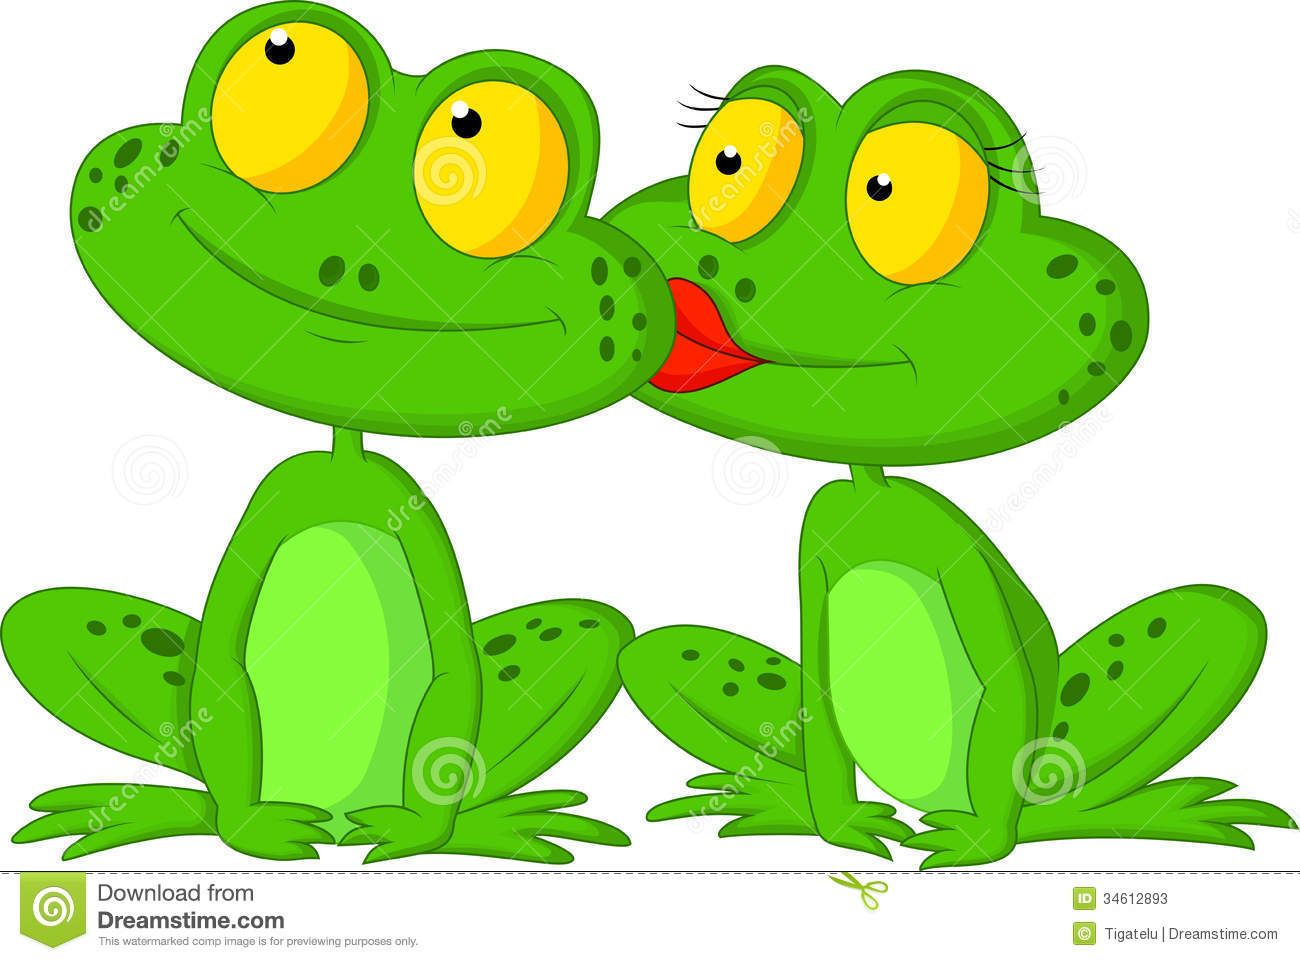 Girl frog cartoon couple x3cbx3efrog cartoonx3c bx3e stock photos images x26amp pictures 56